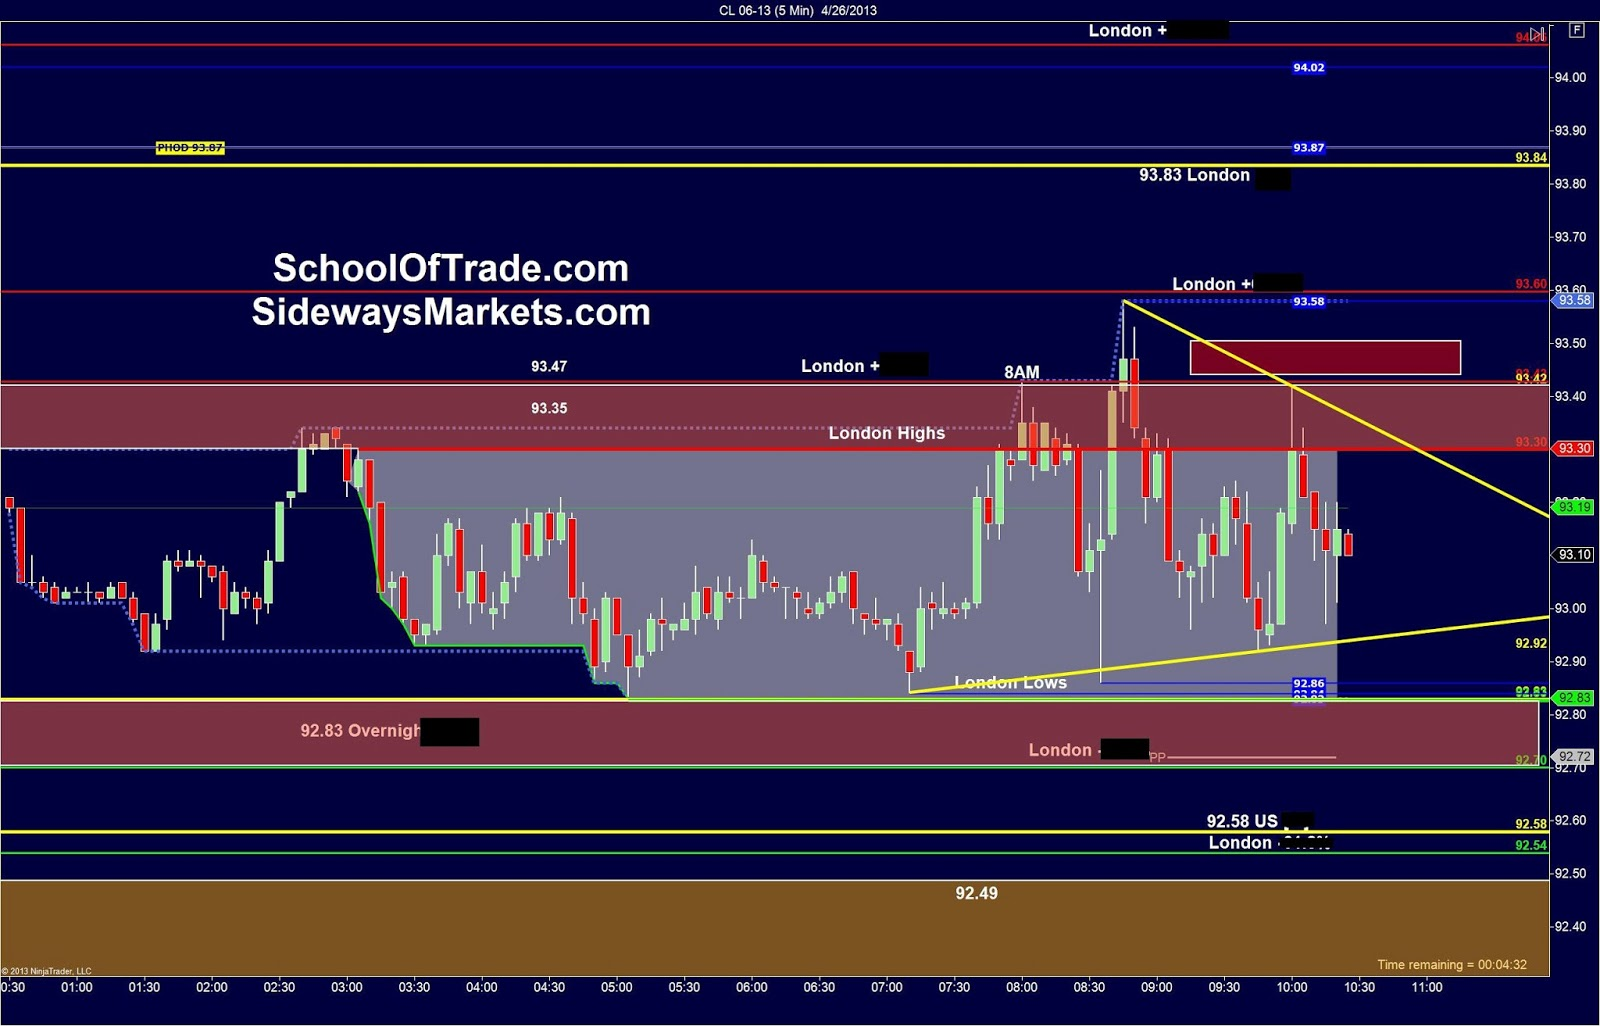 Crude oil futures trading strategy